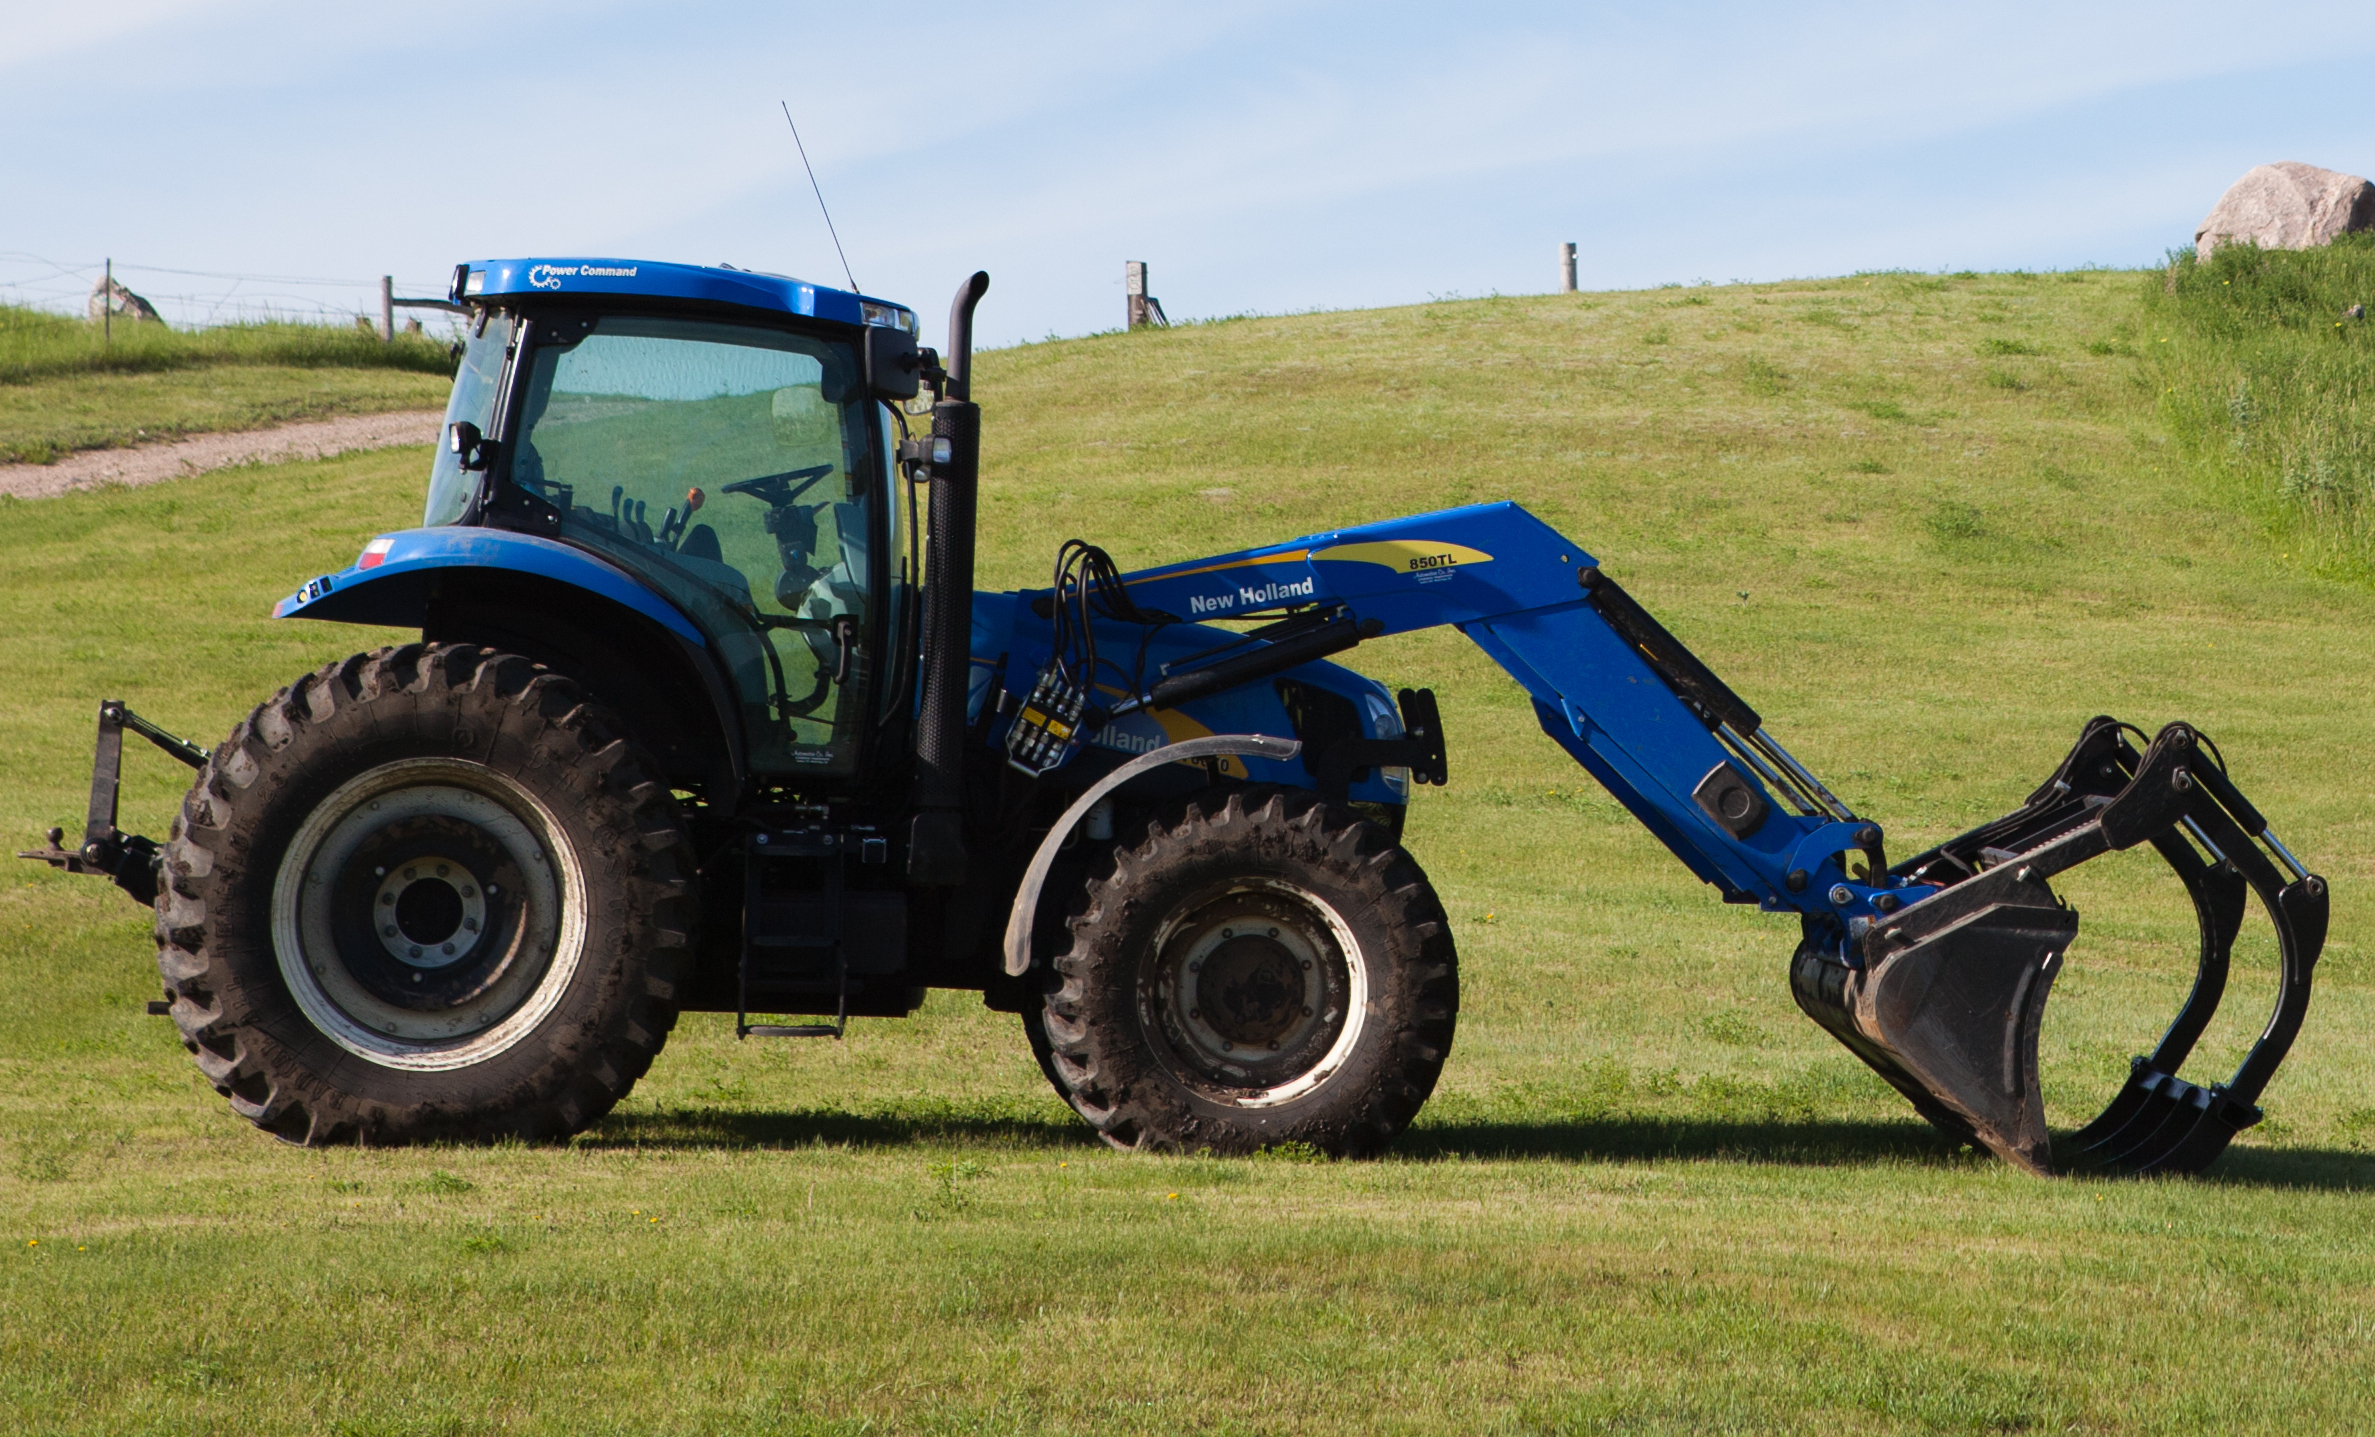 File:New Holland tractor with NH 850TL front loader.jpg